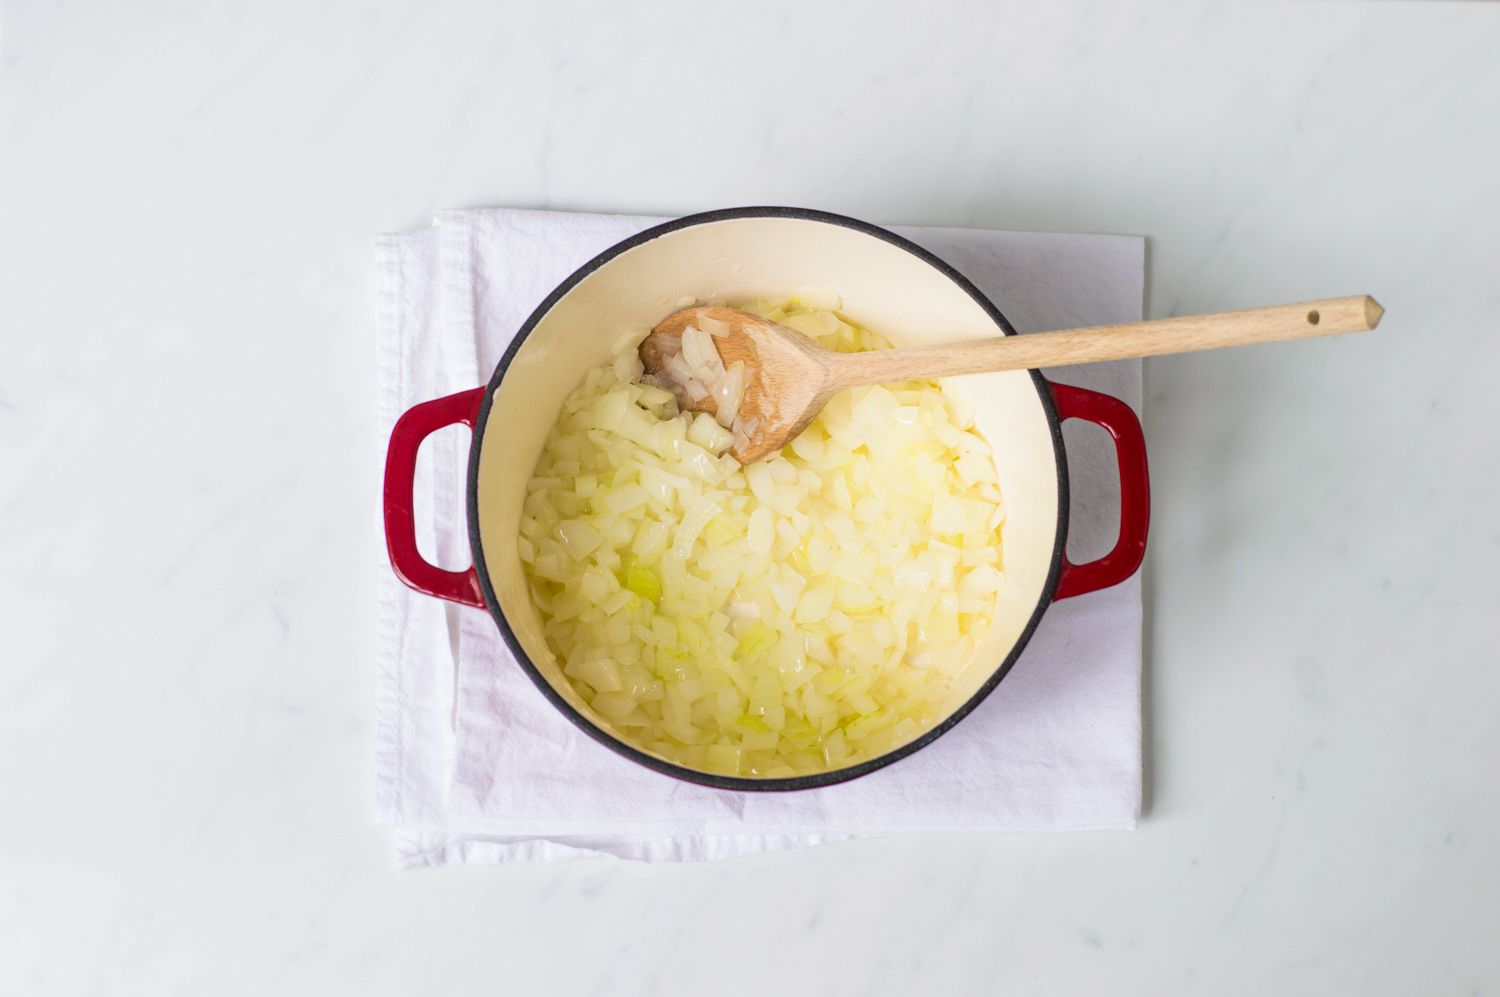 Onions cooking in a Dutch oven with a wooden spoon